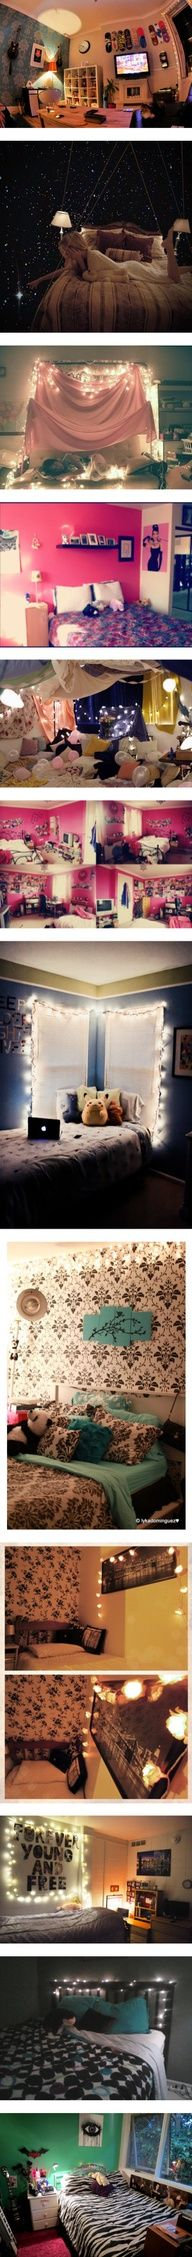 I love the 5th room :)   Bedrooms! :) by ievish on Polyvore  teen hipster tumblr bedroom inspiration